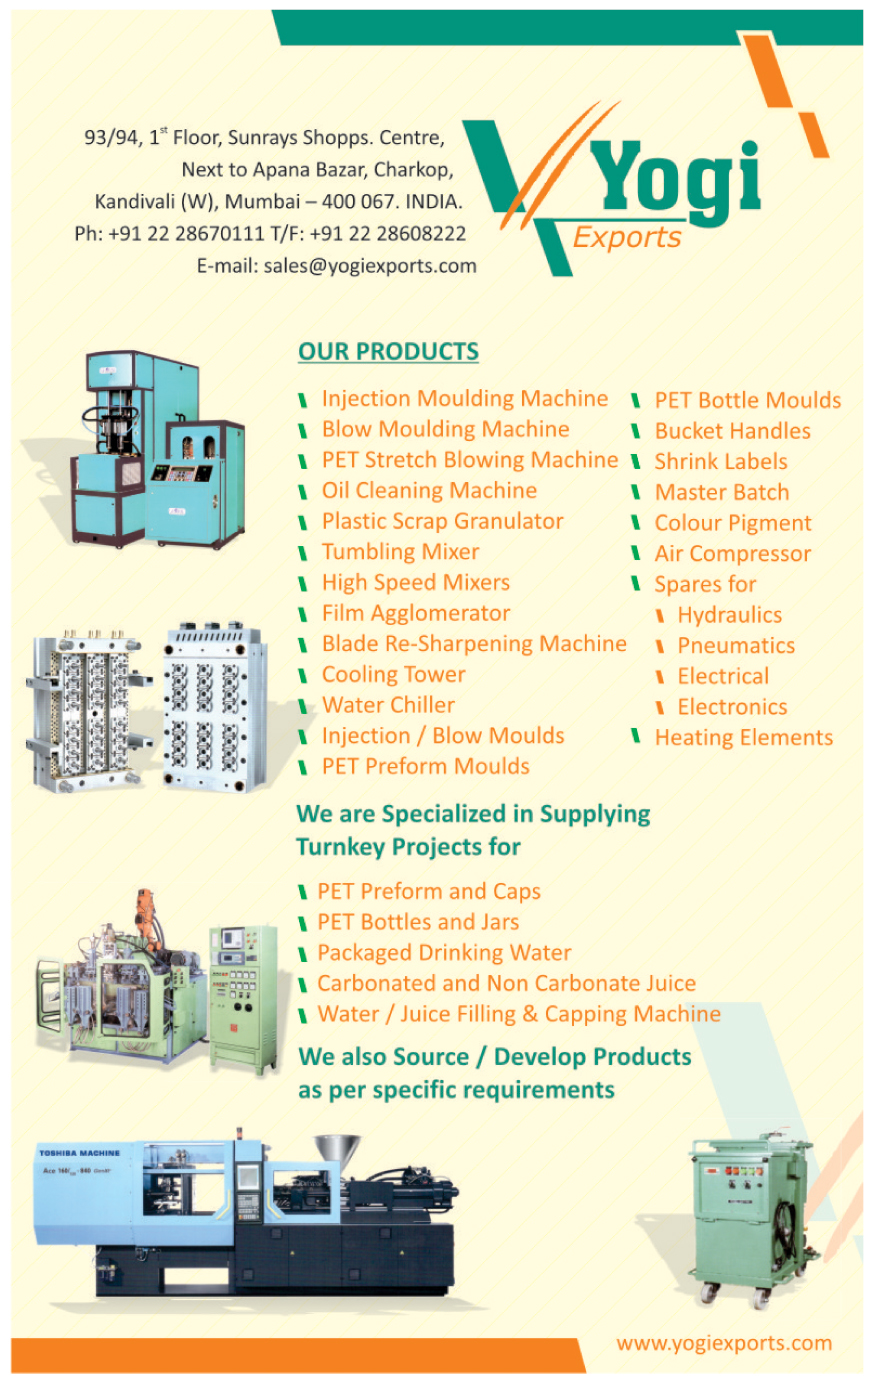 Injection Moulding Machines, Blow Moulding Machines, Pet Stretch Moulding Machines, Oil Cleaning Machines, Plastic Scrap Granulator, Tumbling Mixers, Mixer For Plastic, Film Agglomerator, Blade Re Sharpening Machines, Cooling Towers, Water Chillers, Injection Moulds, Blow Moulds, Pet Preform Moulds, Pet Bottle Moulds, Bucket Handles, Shrink Handles, Master Batches, Colour Pigments, Air Compressor, Hydraulic Spare Parts, Electronic Spare Parts, Electrical Spare Parts, Pneumatic Spare Parts, Heating Elements, Plastic Scrap Granulator,Pet Bottles Moulds, Shrink Labels, Mixers, Pet Stretch Blowing Machines